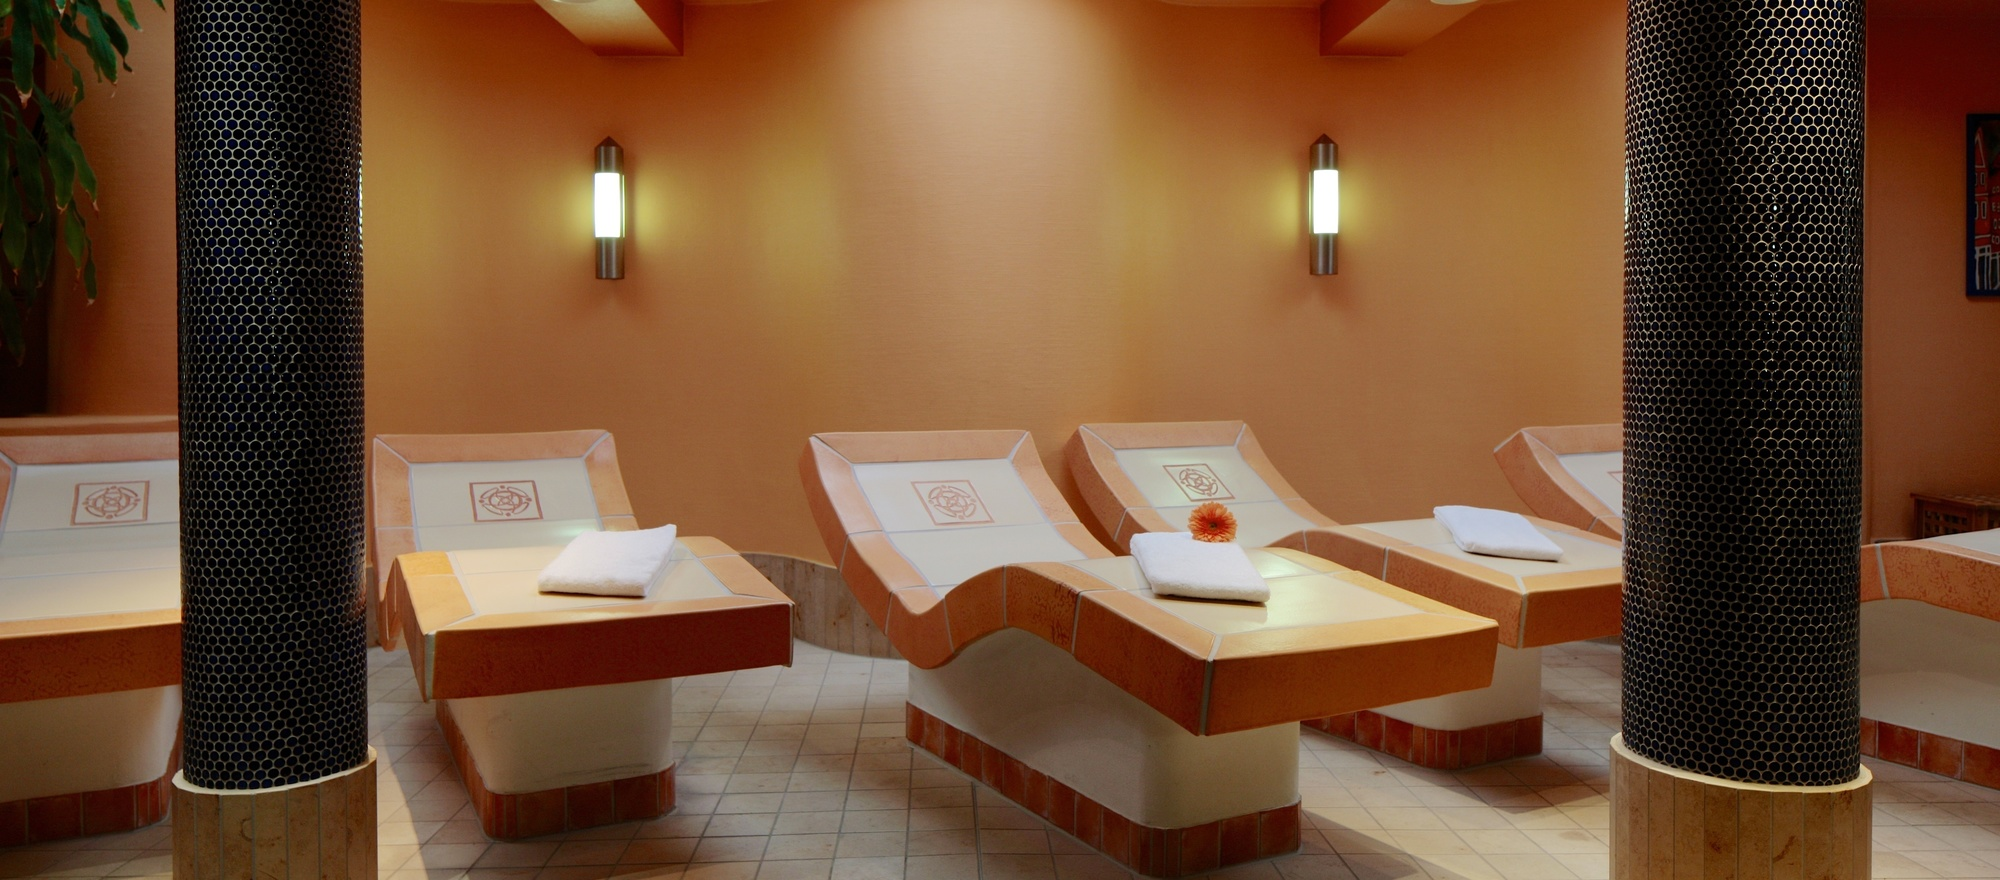 Sauna area with heated recumbency at the 4-star hotel Ringhotel Faehrhaus in Bad Bevensen